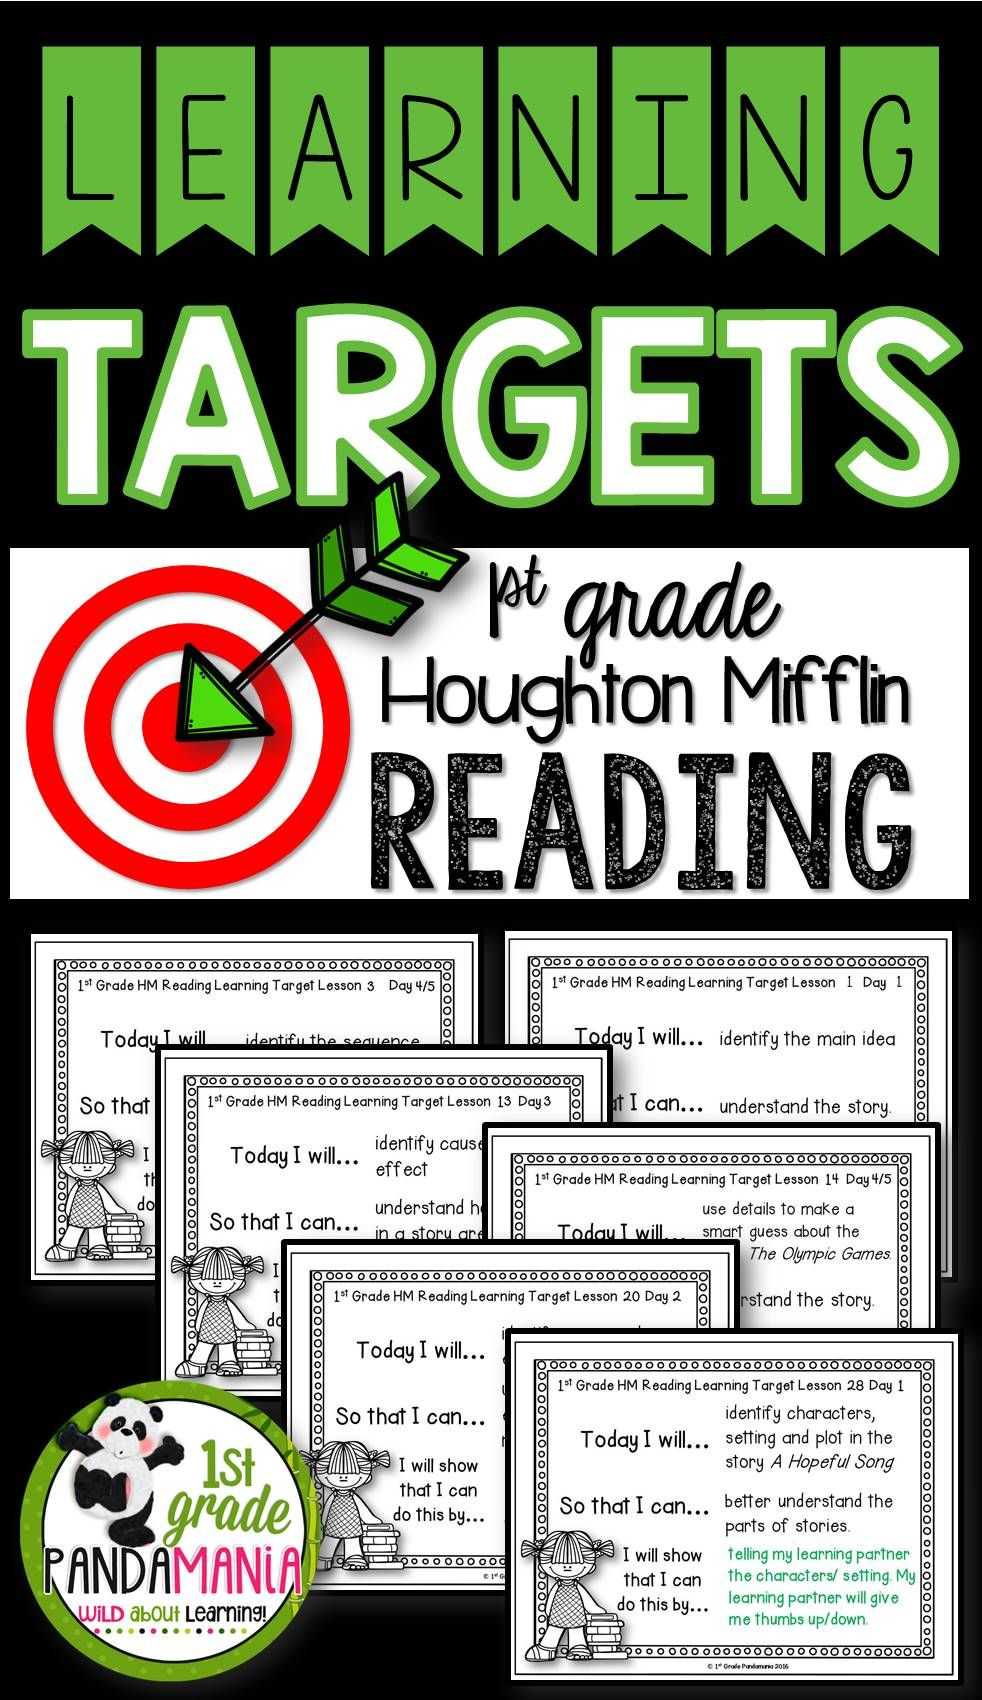 medium resolution of Learning Target Posters for the Year! Houghton Mifflin Journeys 2011  Reading for 1st Grade. Post daily Learning Int…   Learning targets